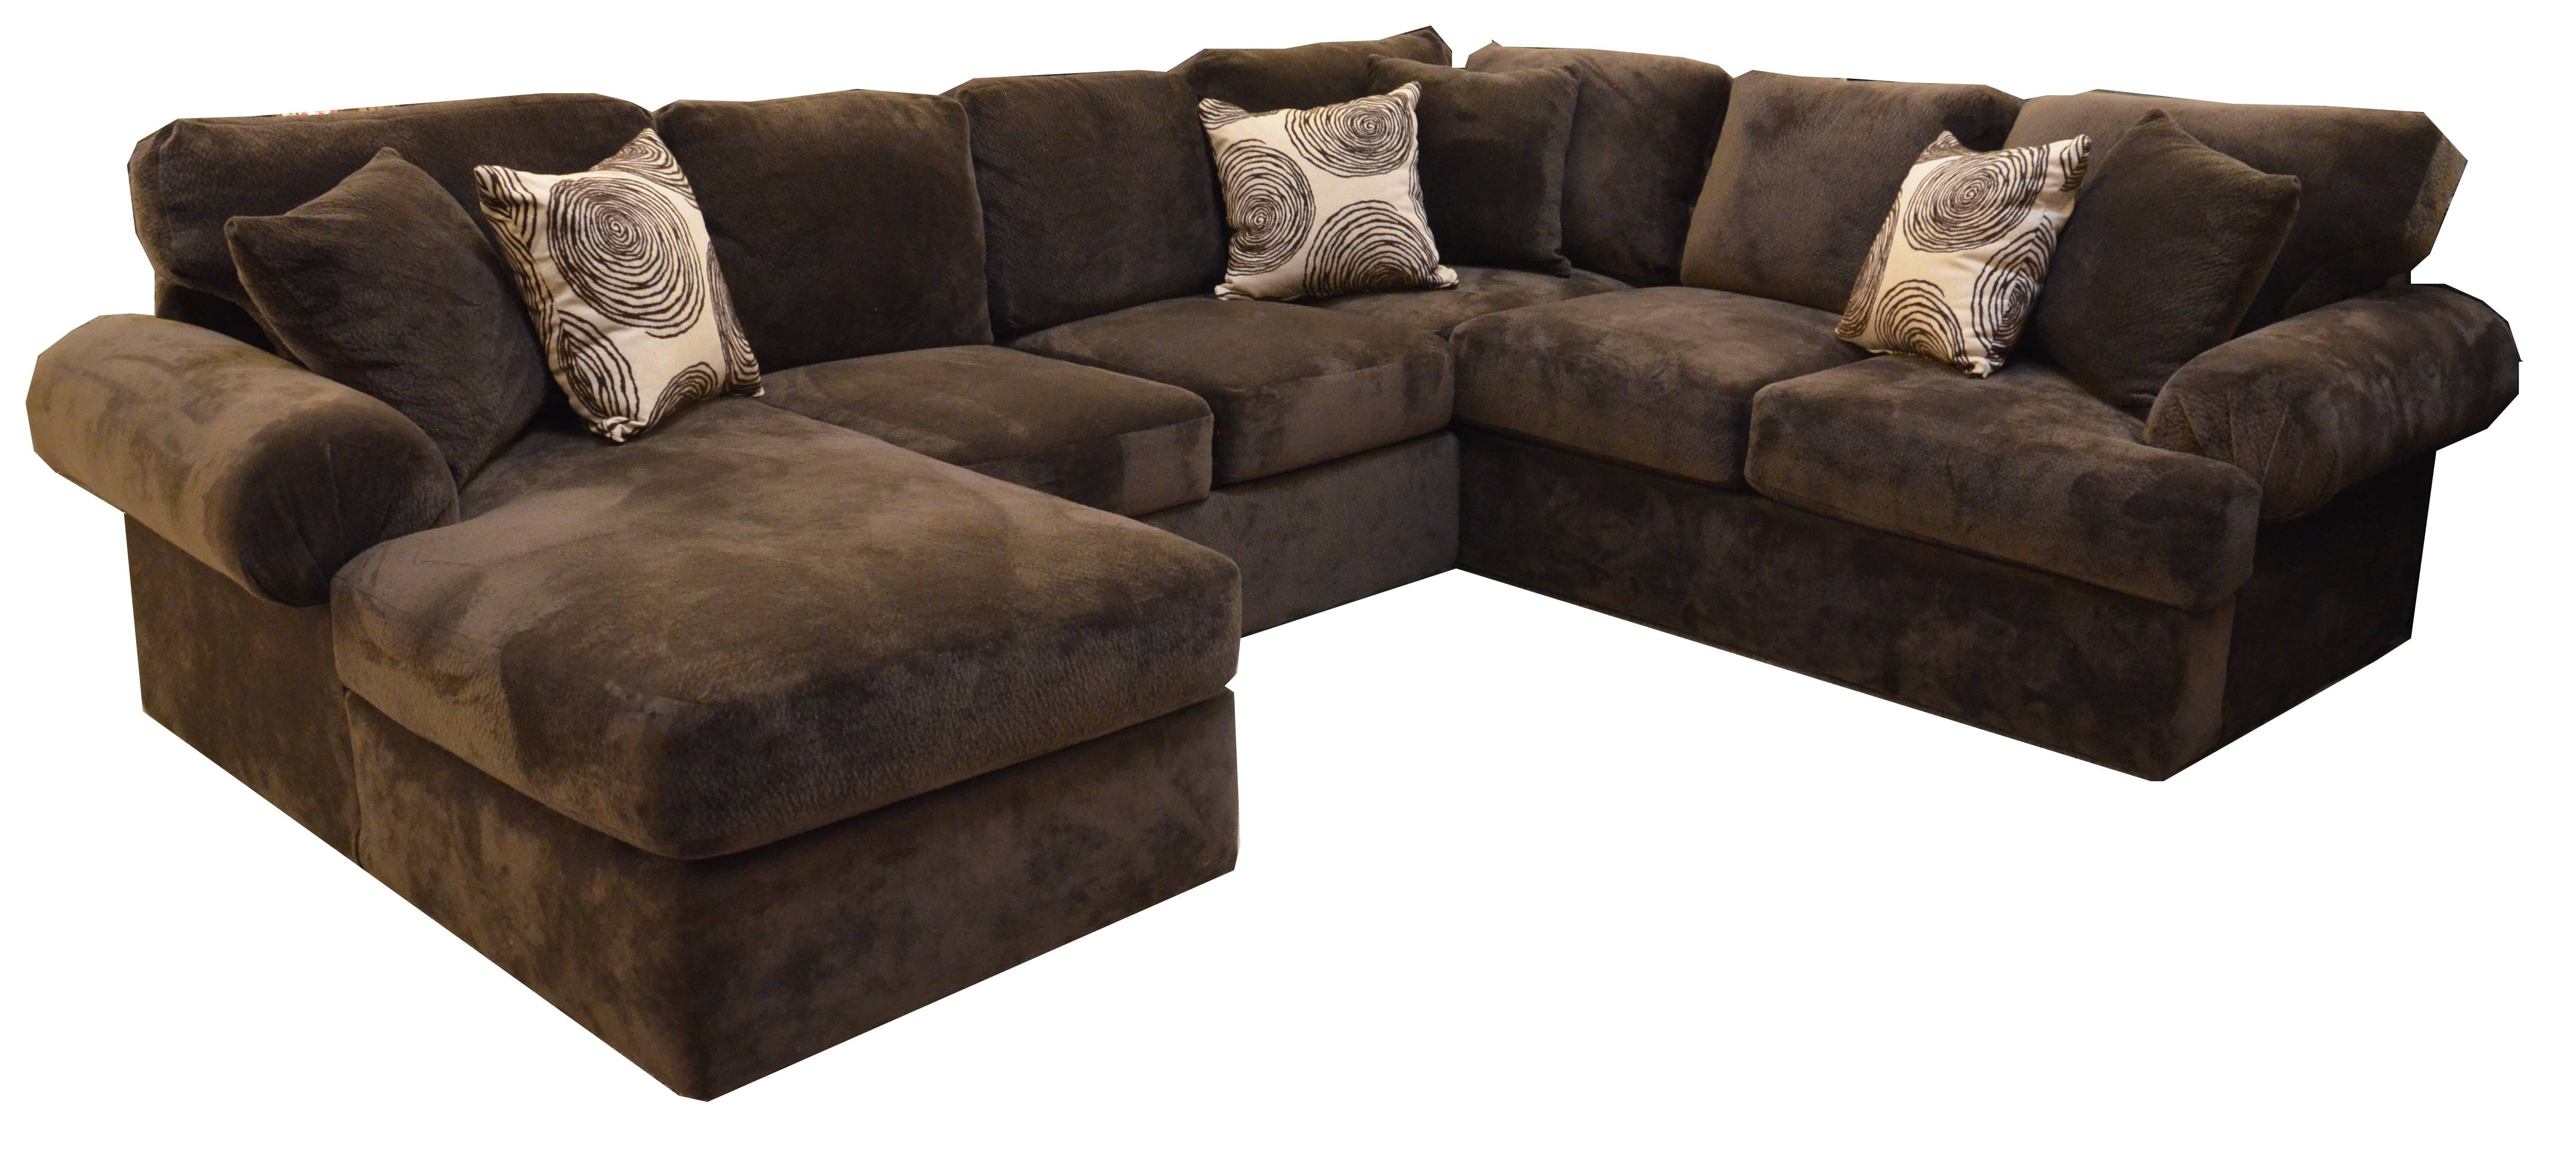 Amusing Bradley Sectional Sofa 77 With Additional Angled Sofa pertaining to Angled Sofa Sectional (Image 4 of 30)